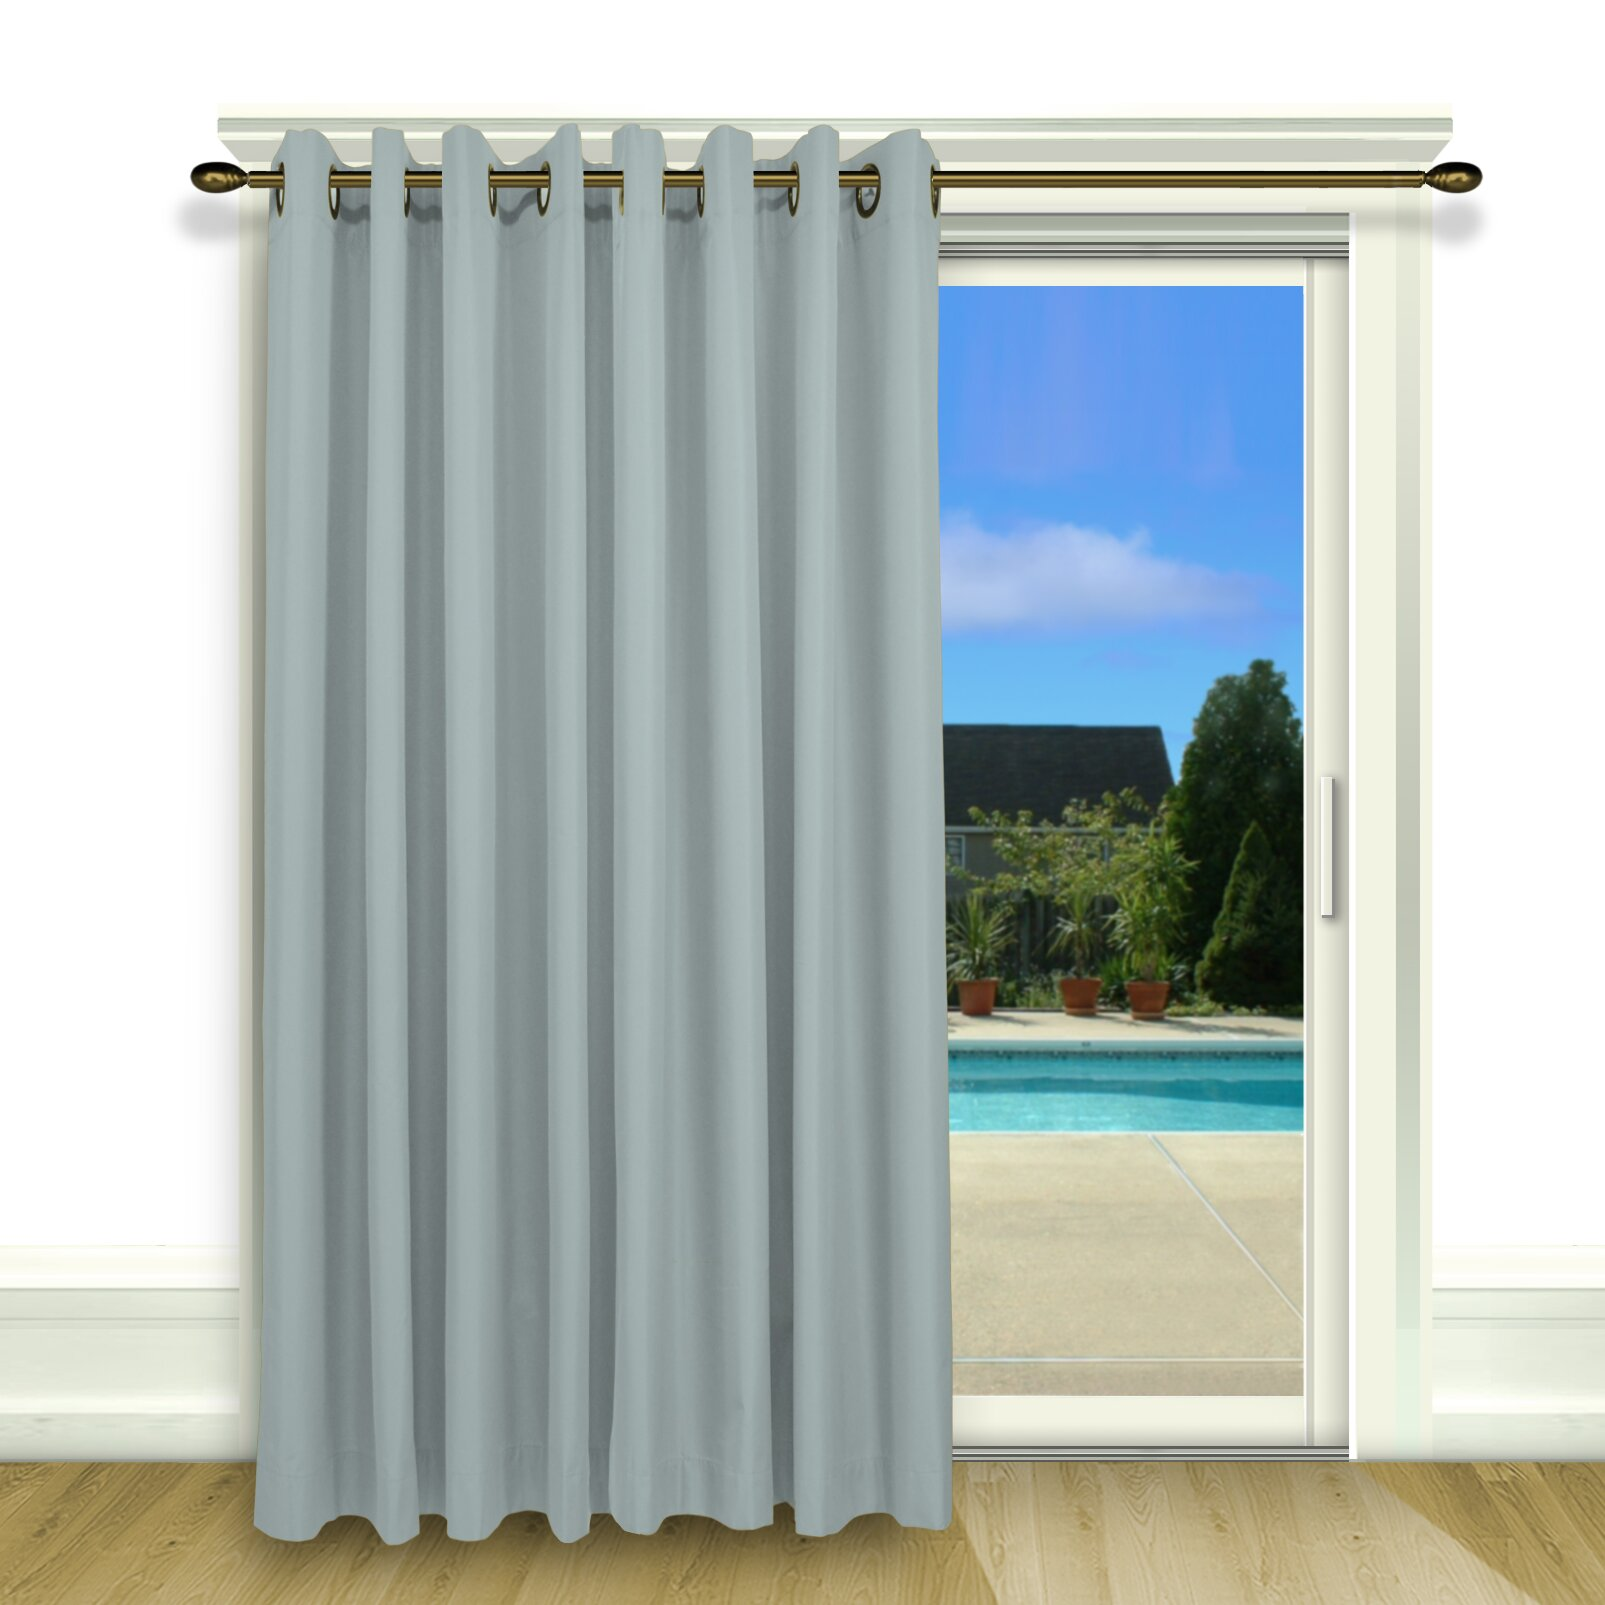 Ricardo Trading Elegance Grommet Single Curtain Patio Panel Reviews Wayfair Supply